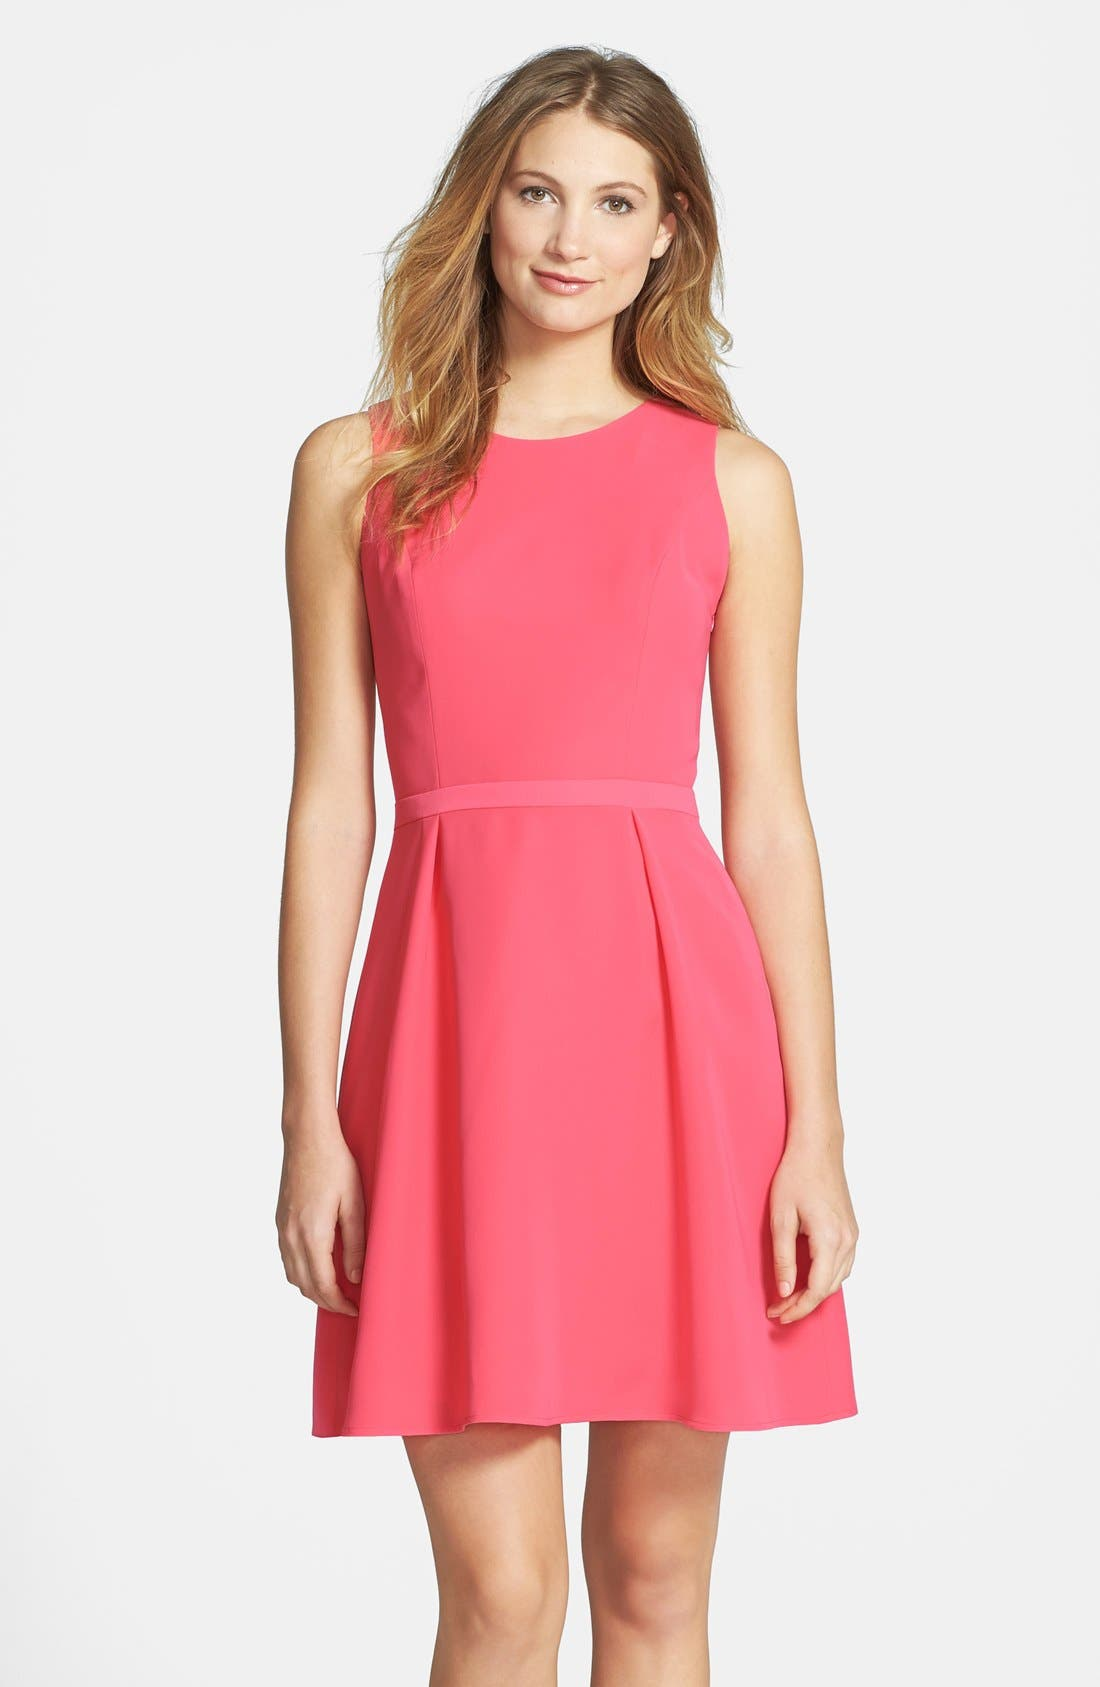 Main Image - Cynthia Steffe Knot Back Crepe Fit & Flare Dress